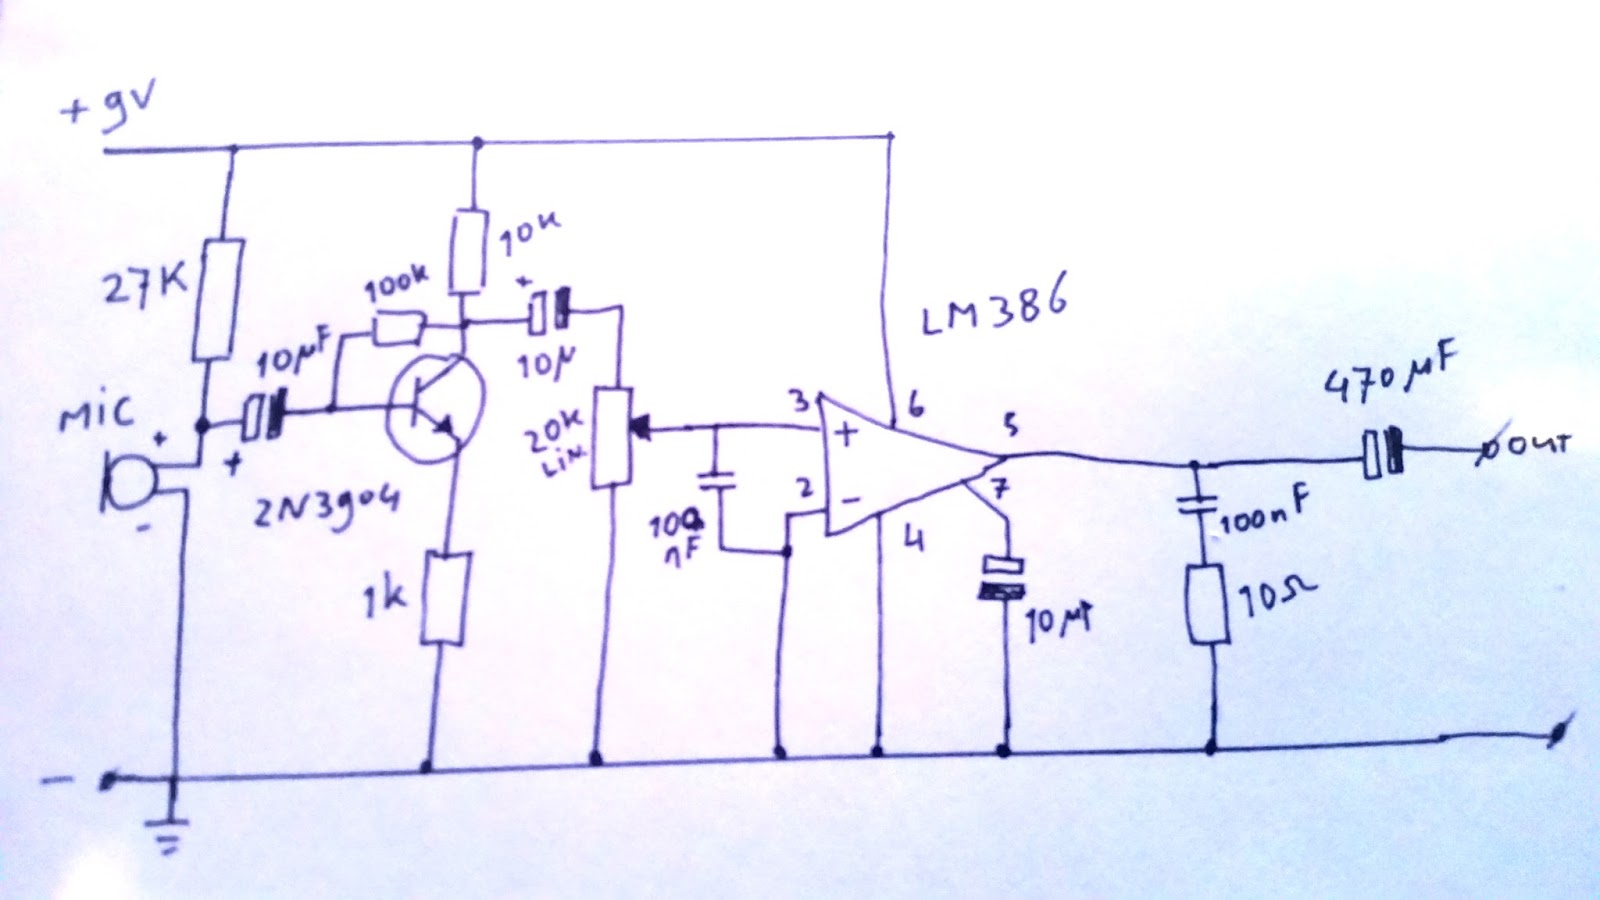 Eddy Bergmancom Led Oscilloscope With 100 Leds Electret Microphone Amplifier I Build It A 2n3904 Transistor As Pre Amp For The And Then Lm 386 To Amplify Signal Heres Little Sketch Of Circuit